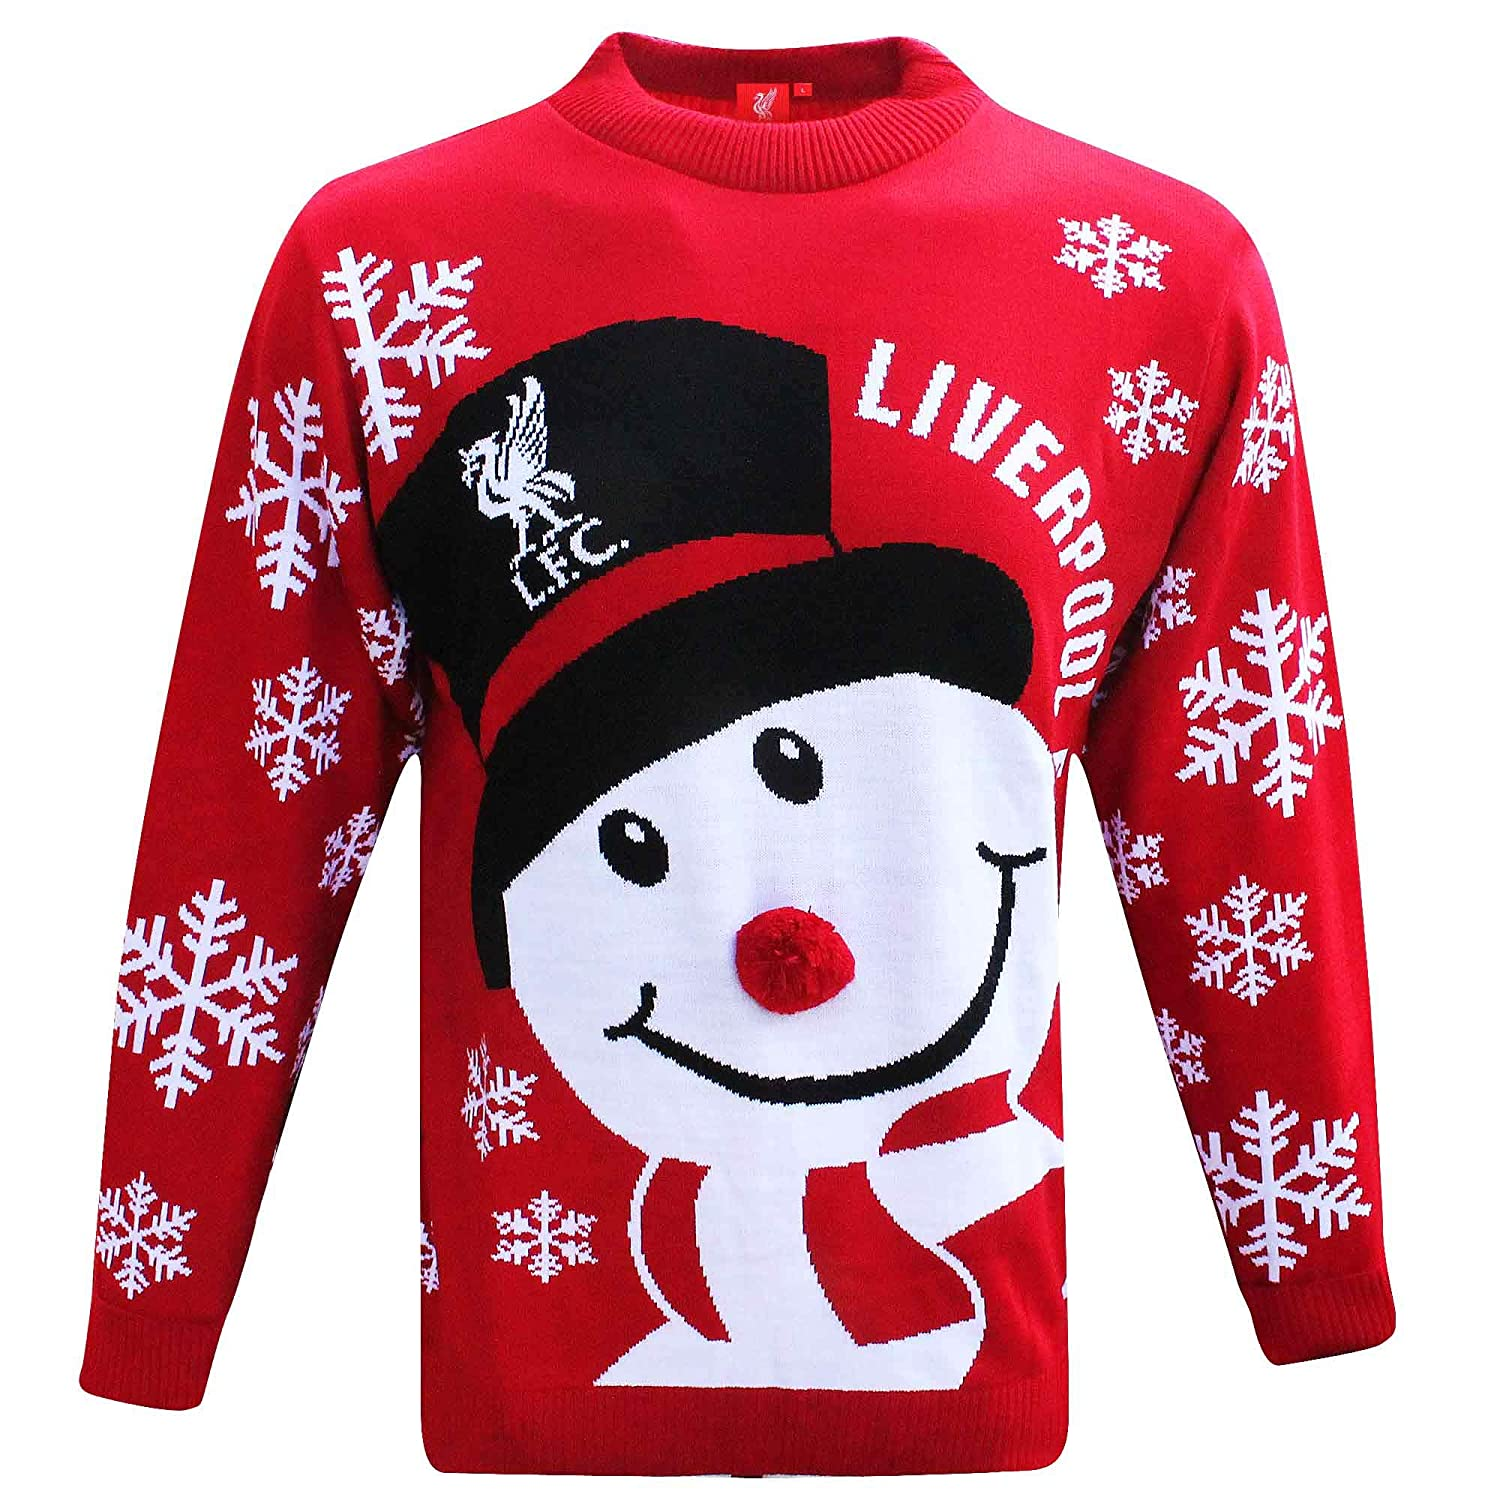 Official Liverpool FC Knitted Soccer Christmas Jumper (Sizes S to 3XL) SWEATER13 LIVERPOOL CAN